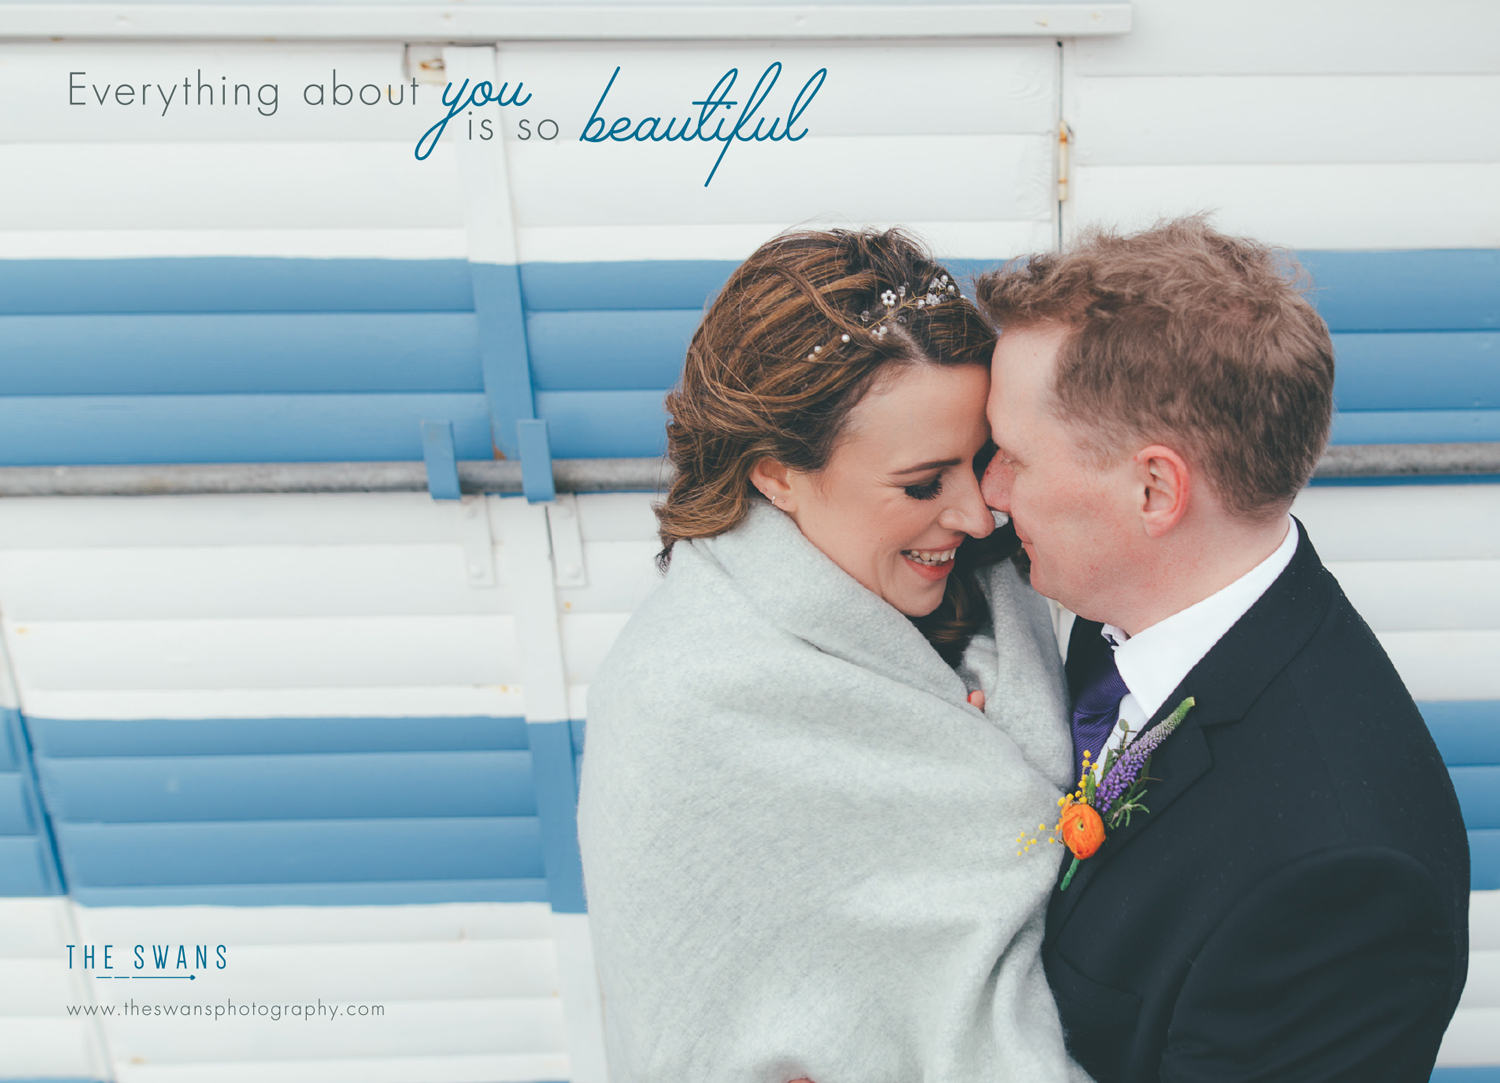 The Swans wedding photography in Kent, logo design and brand styling by Ditto Creative, boutique branding agency in Kent